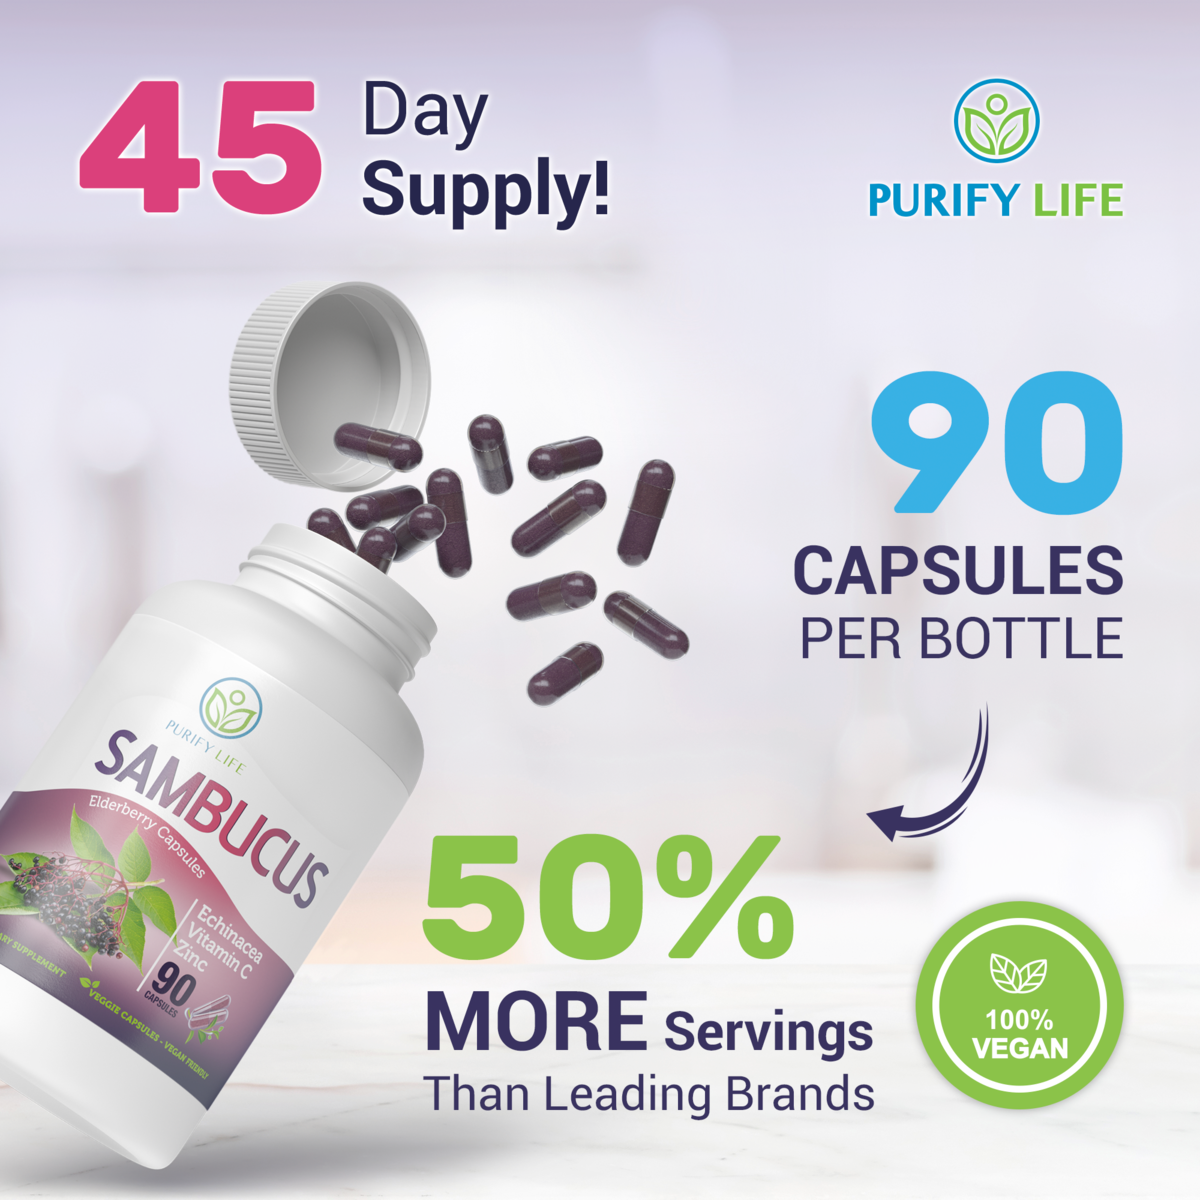 Elderberry Capsules [Double Strength 1500mg] with added Vitamin C , Zinc, and Echinacea - Immune System Support Supplement - 90 Veggie Capsules/45 Day Supply